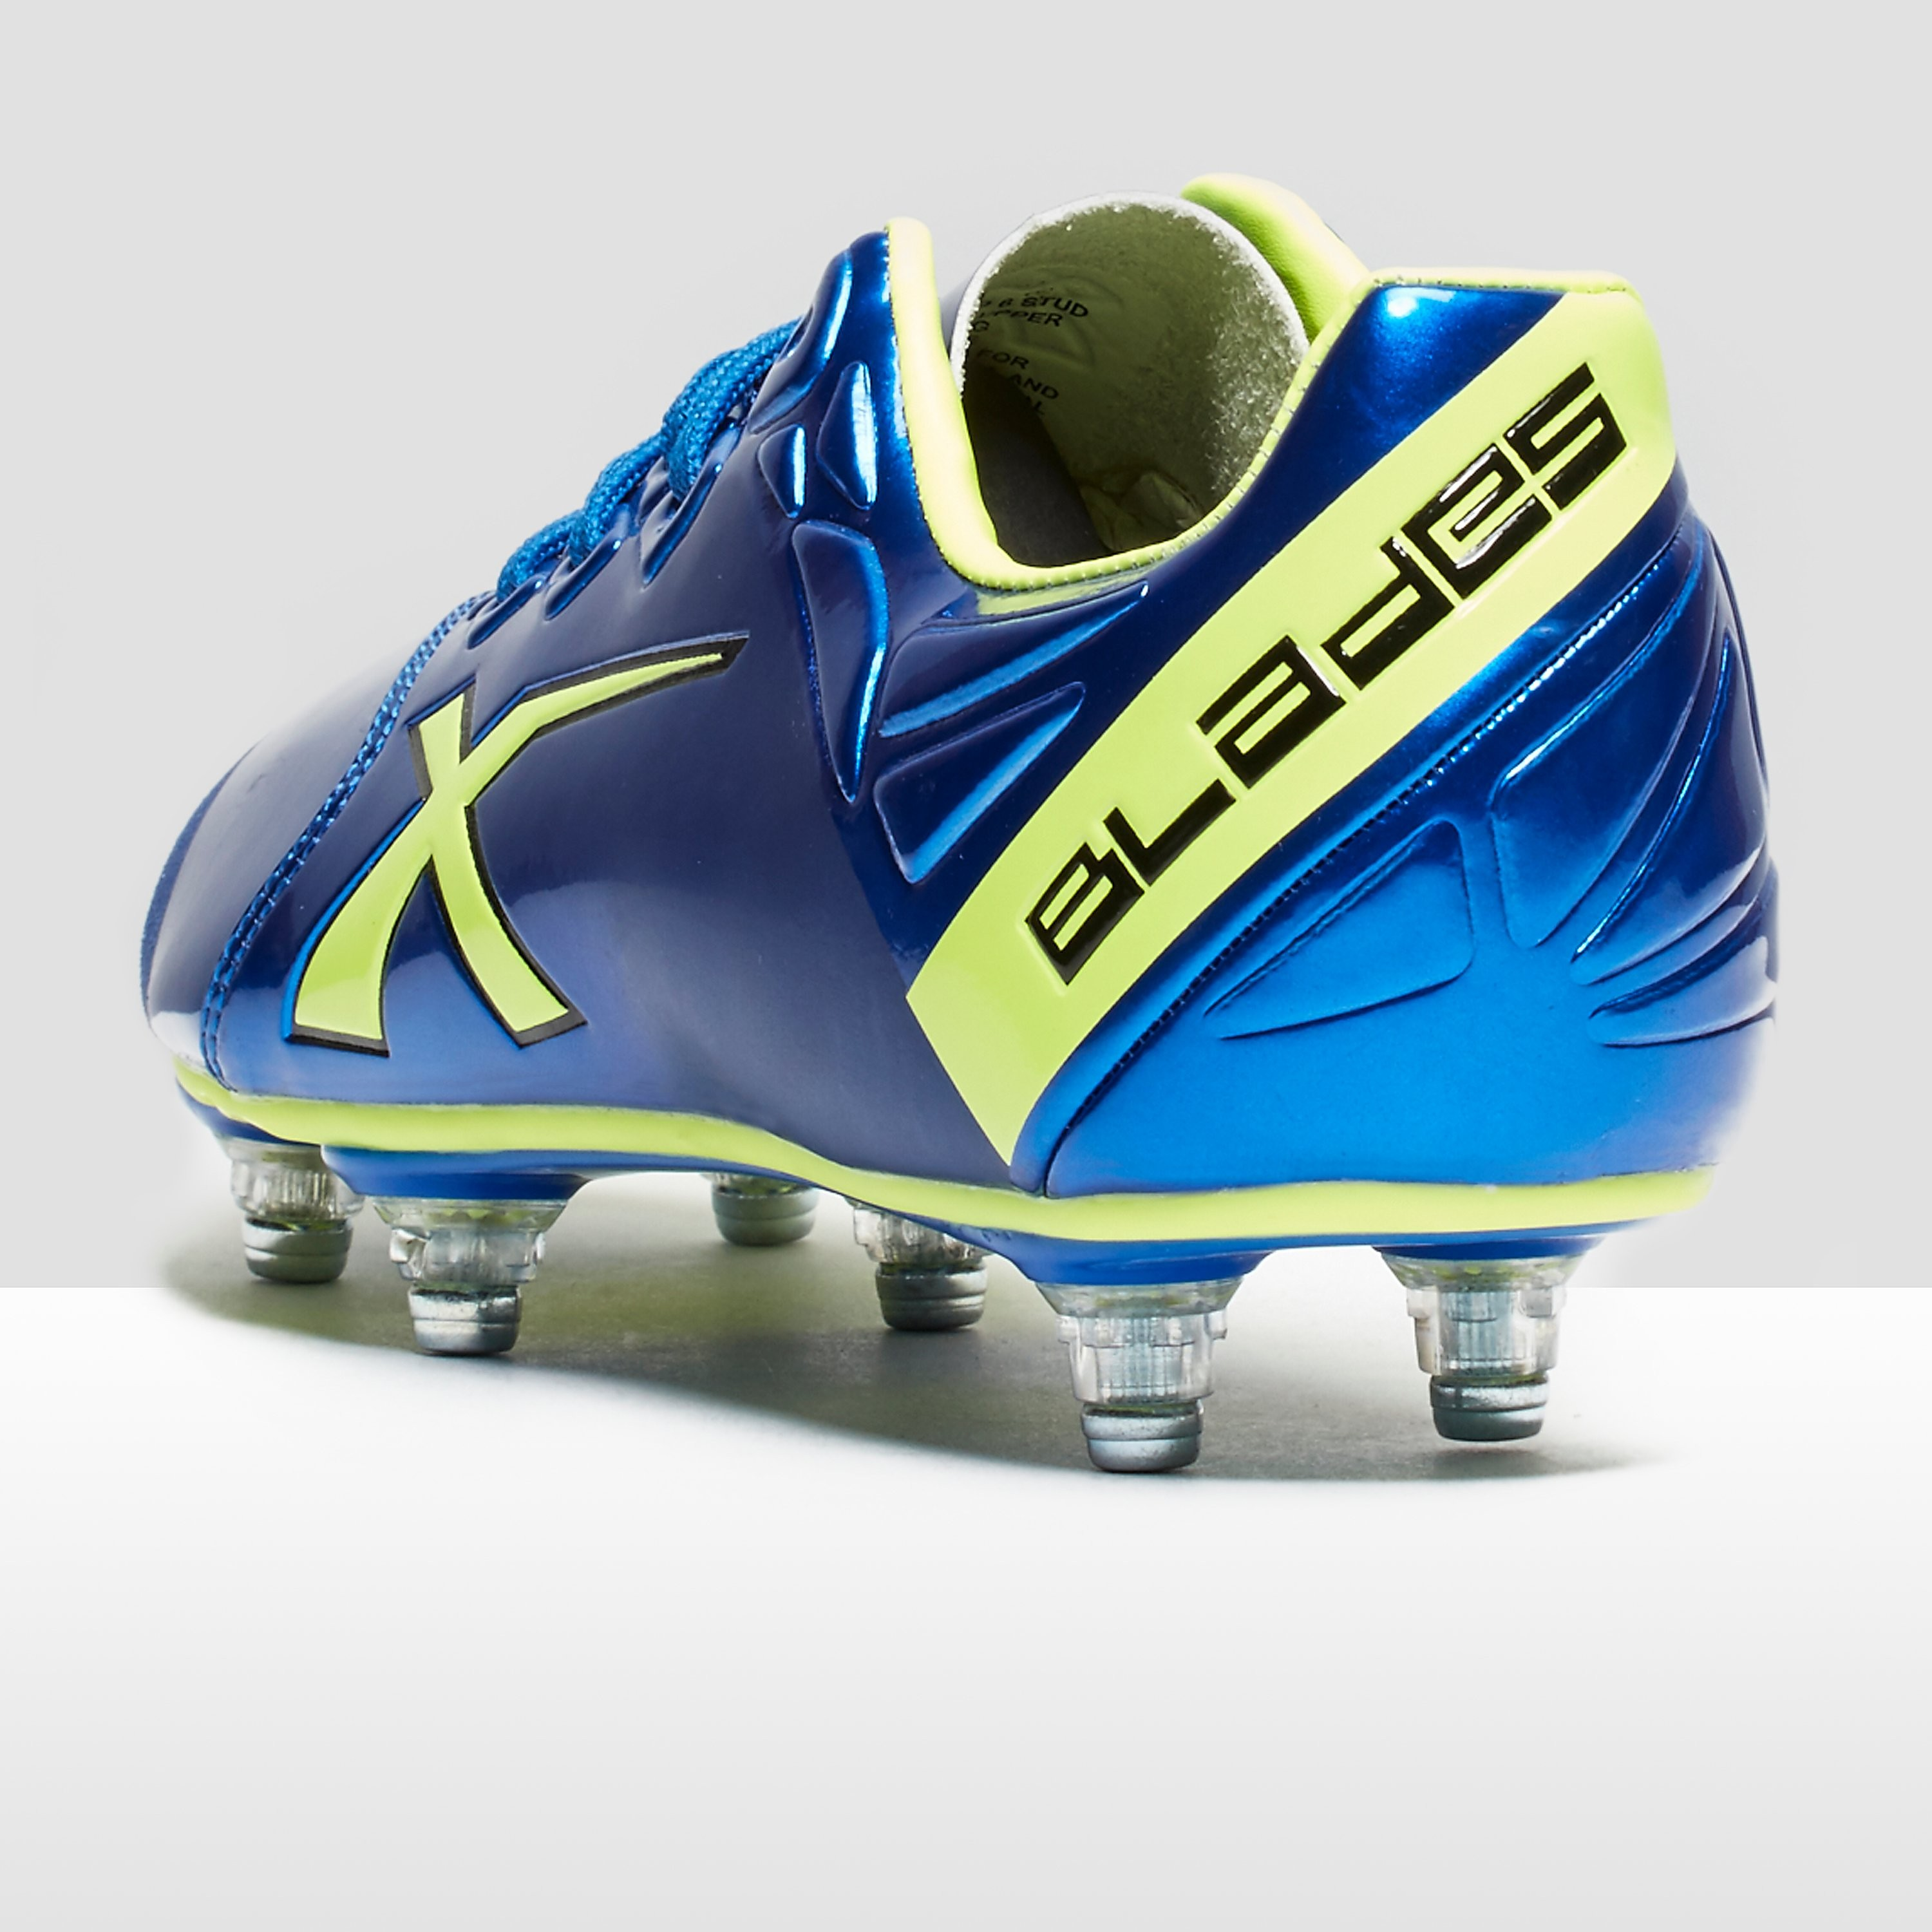 X blades SNIPER SPEED 6 STUD RUGBY BOOT